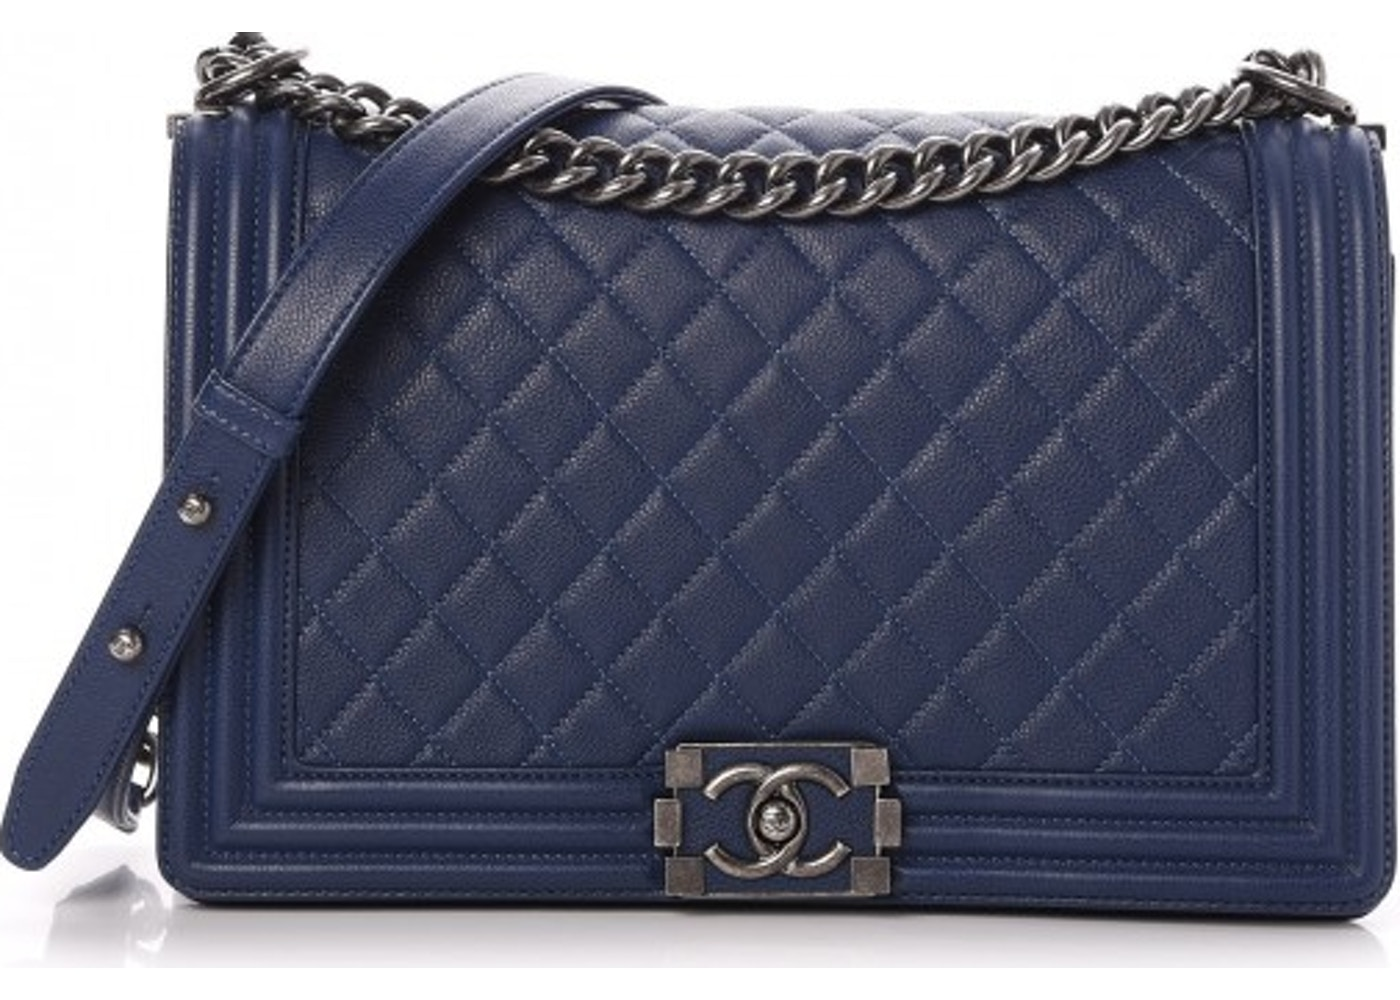 9cd129720a985d Chanel Boy Flap Quilted Grained Calfskin Ruthenium-tone New ...